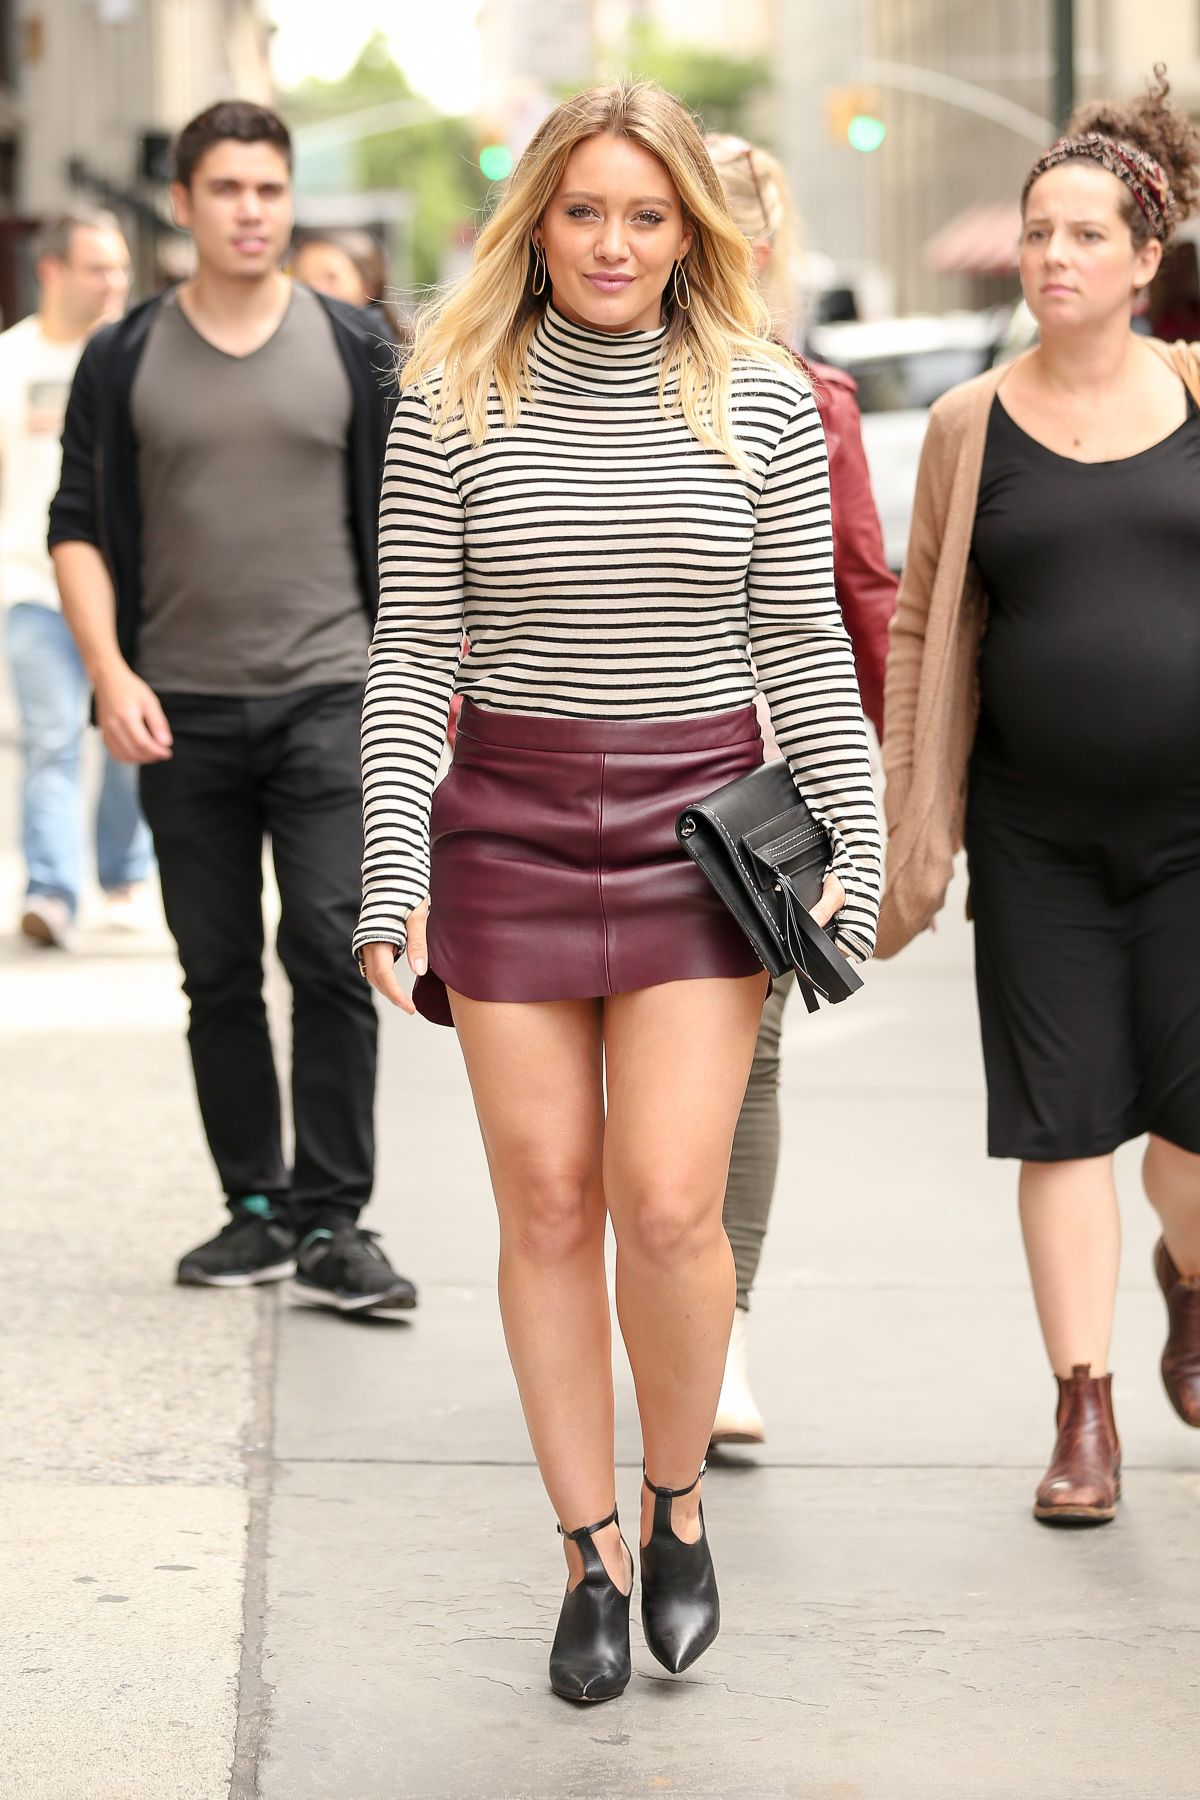 Hilary Duff Heading To Lunch With Friends At Abc Kitchen In New York City